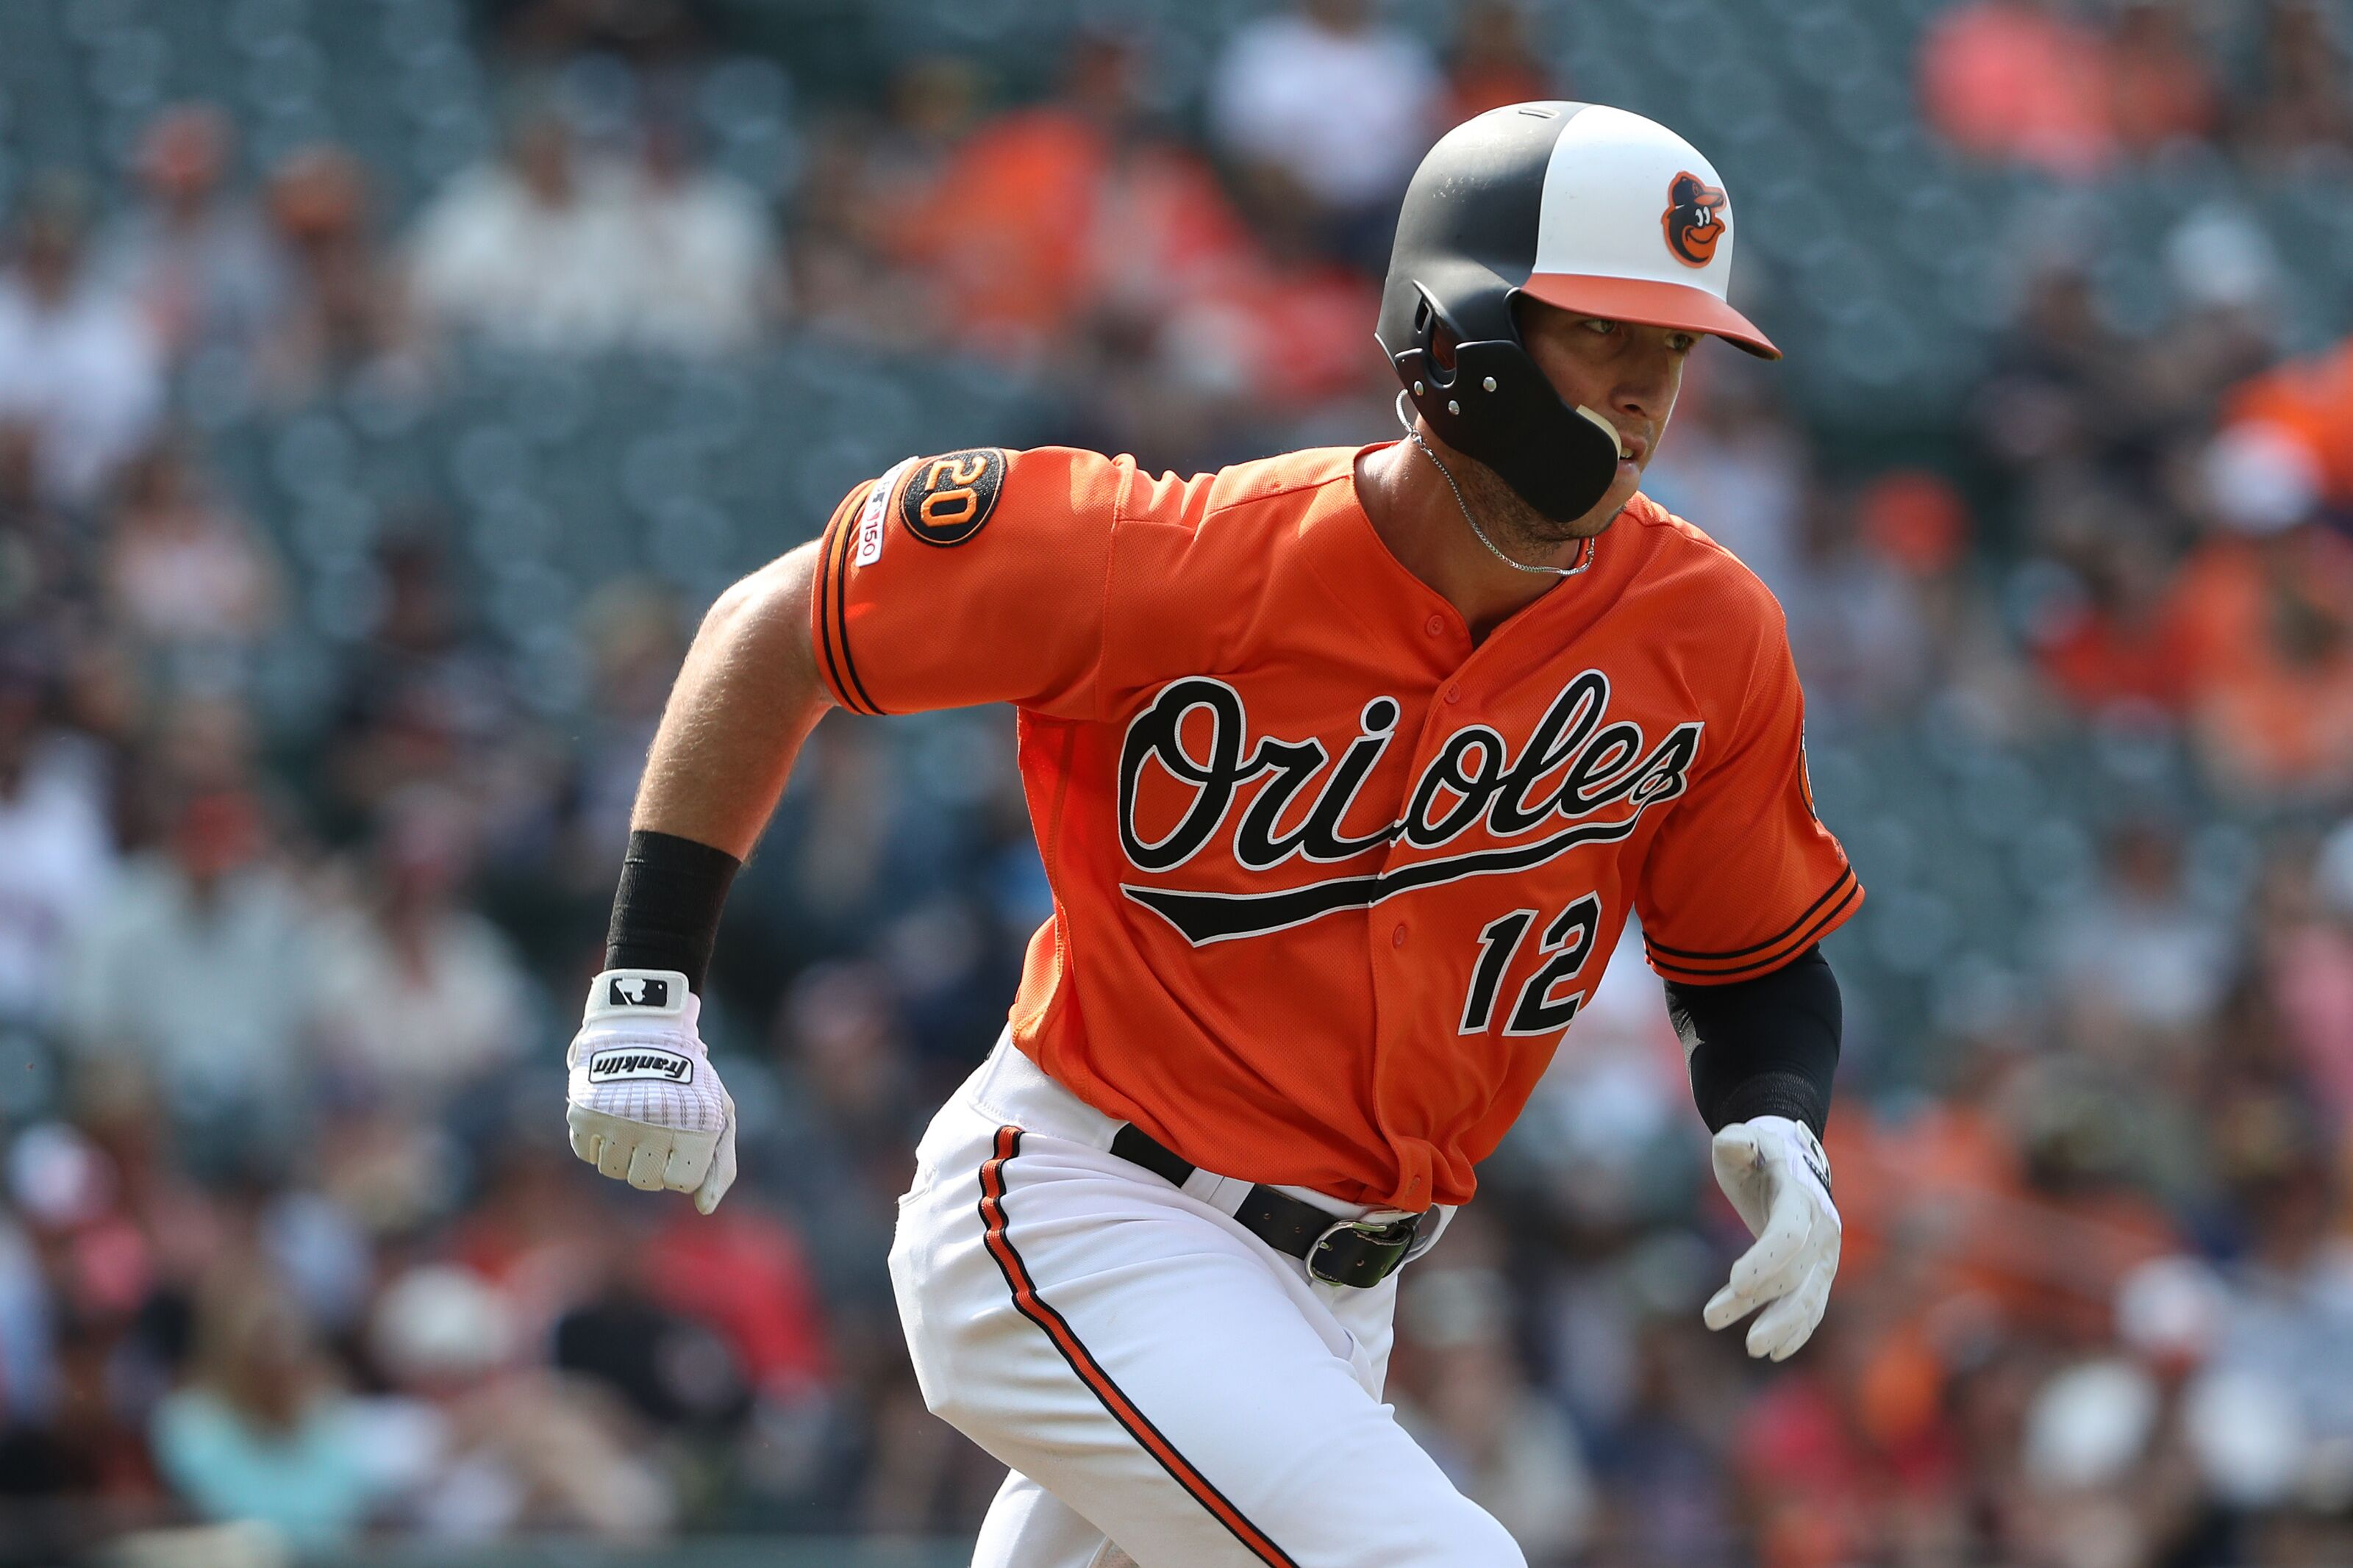 Baltimore Orioles: Takeaways From Frustrating Series Loss To Giants